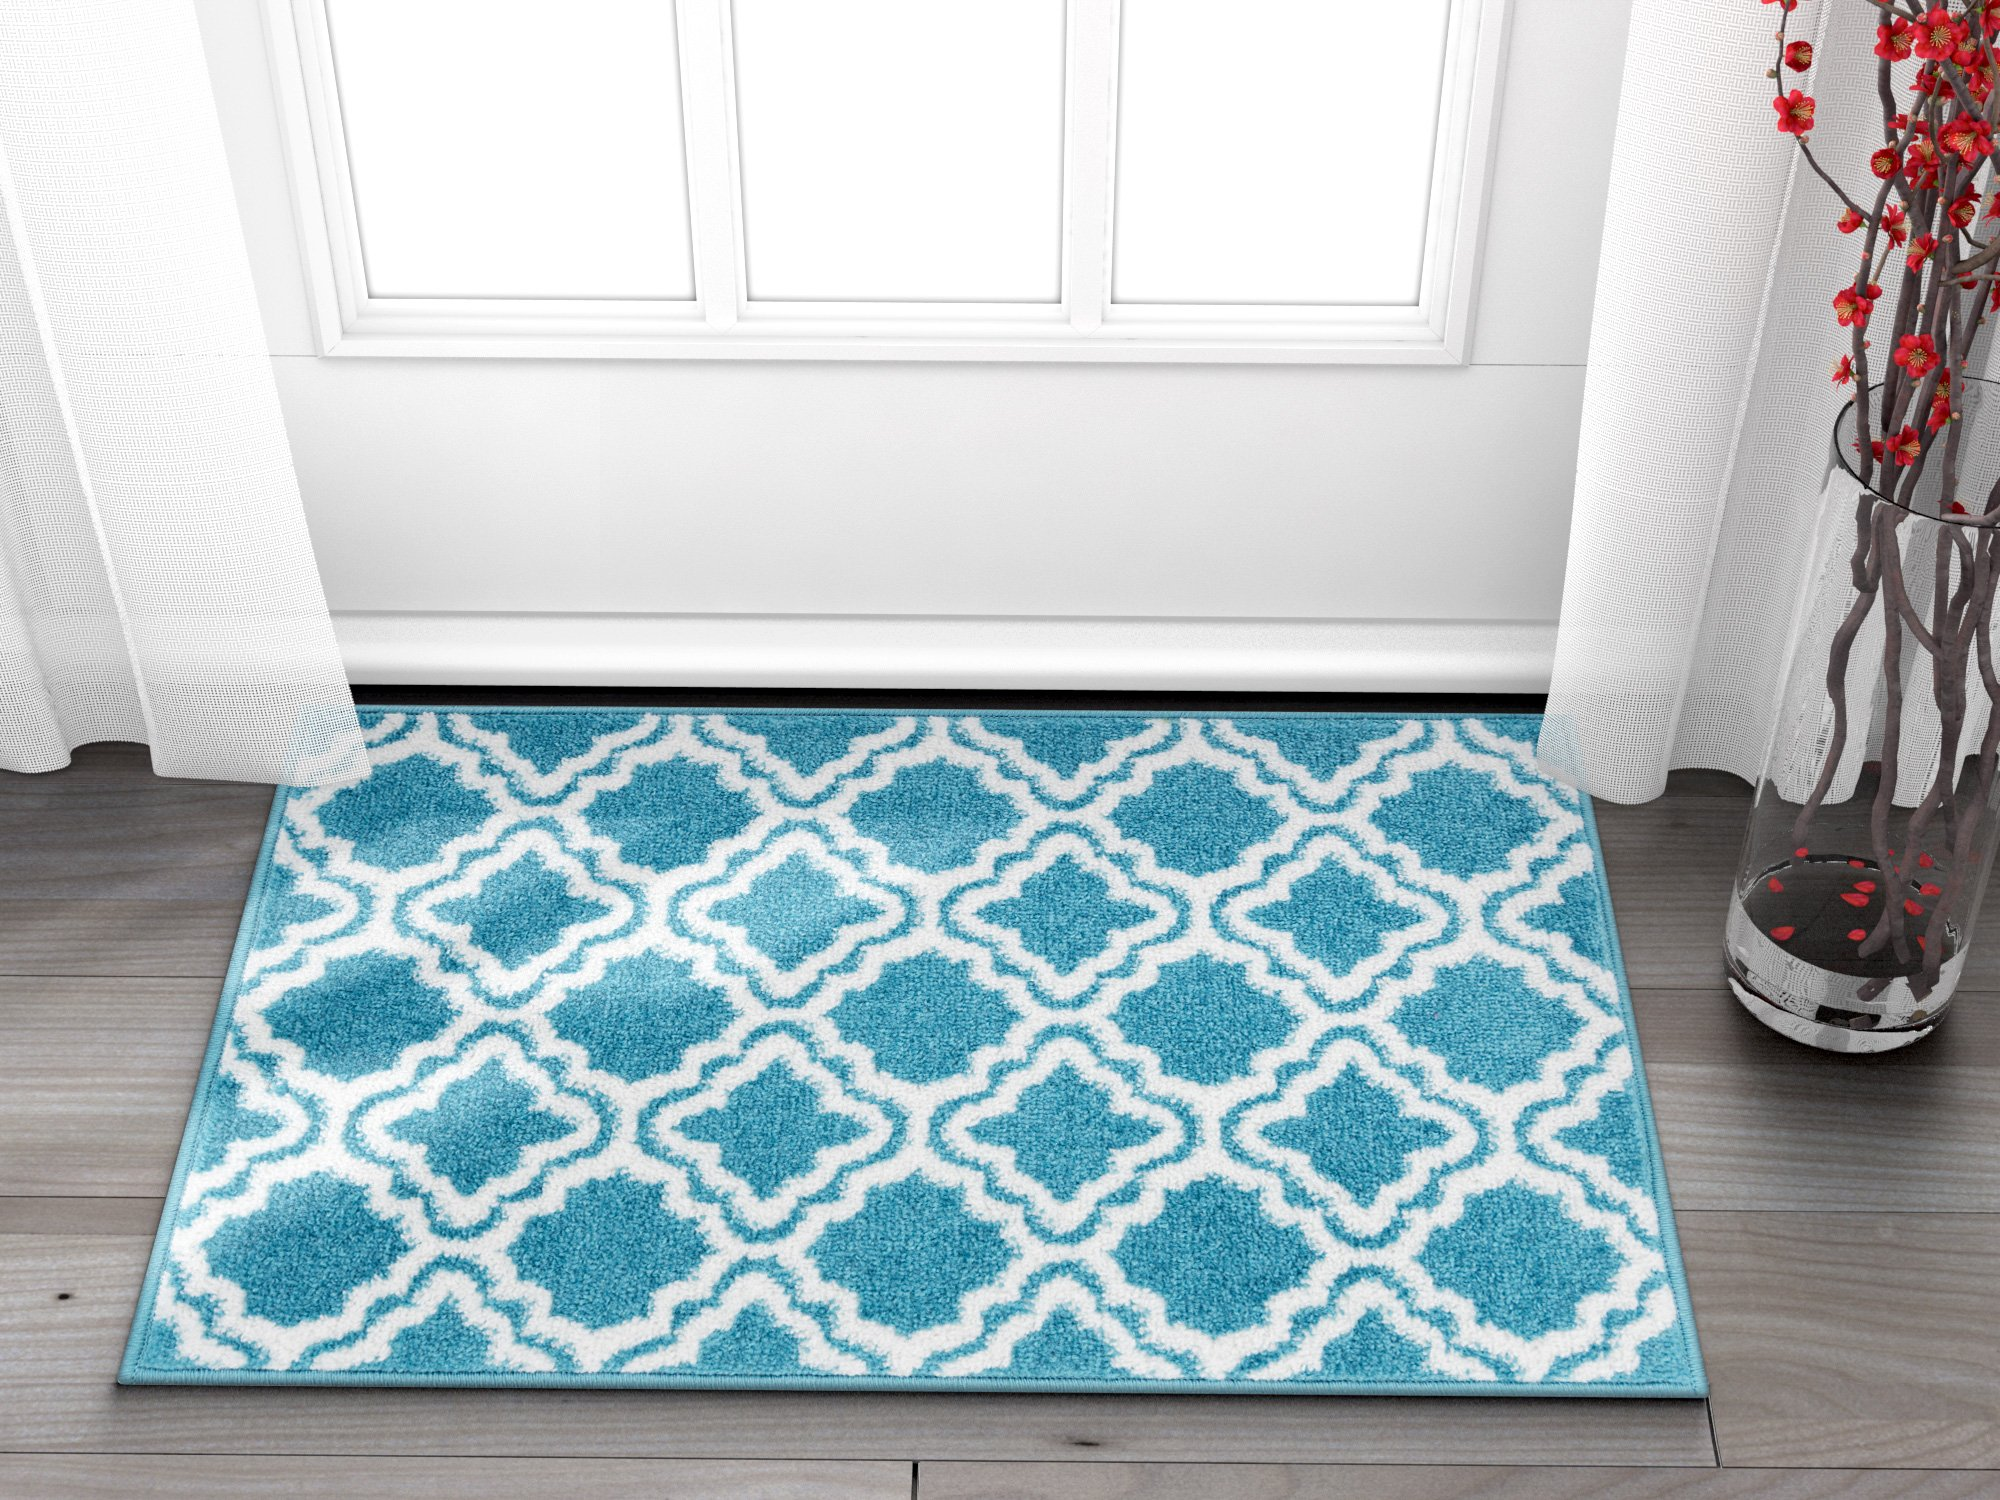 Well Woven Small Rug Mat Doormat Modern Kids Room Kitchen Rug Calipso Blue 1'8'' x 2'7'' Lattice Trellis Accent Area Rug Entry Way Bright Carpet Bathroom Soft Durable